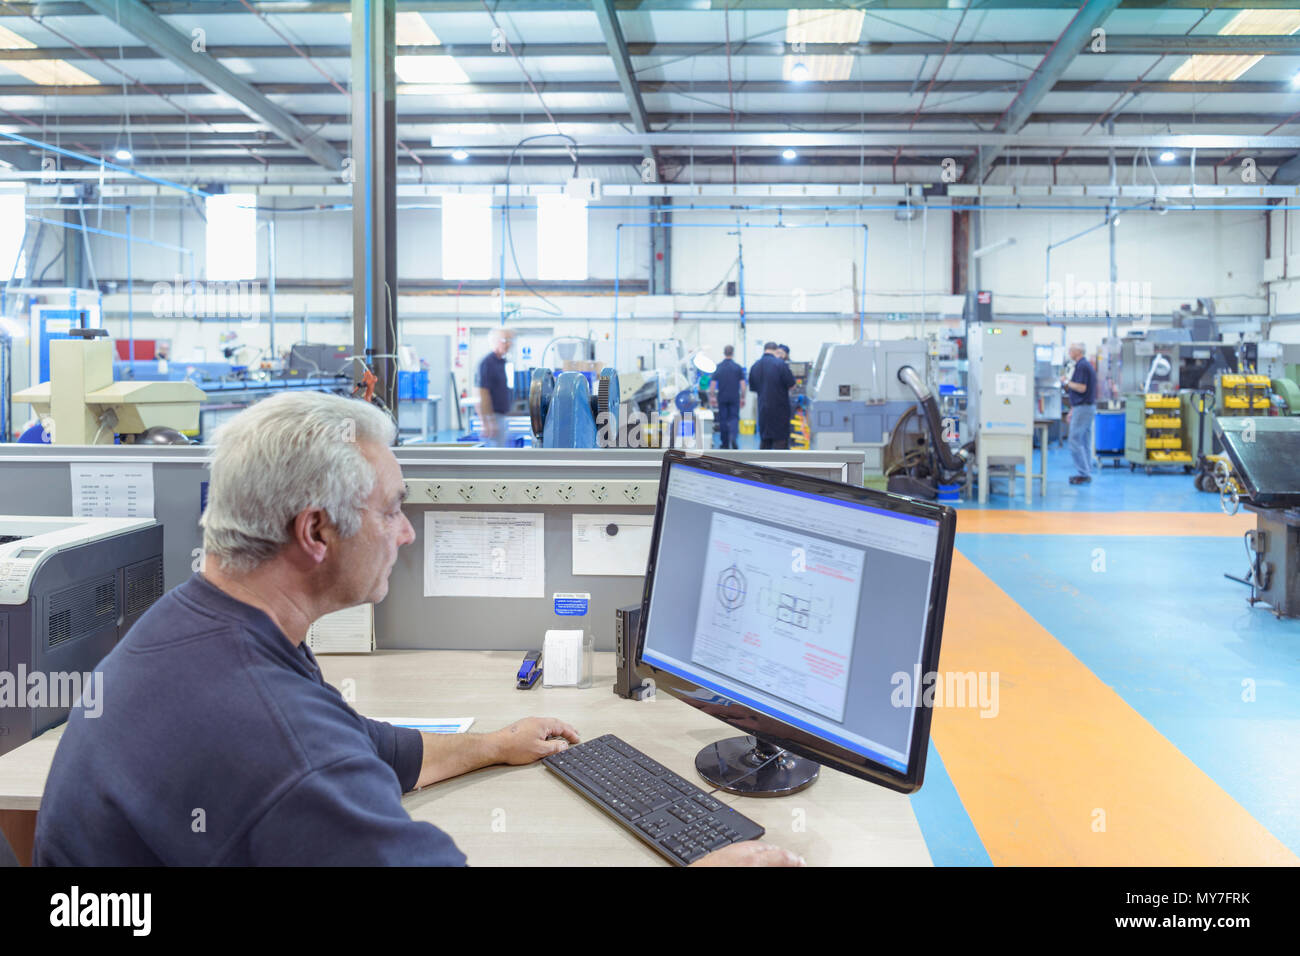 Wide angle view of engineer sending instructions to lathe machinery in engineering factory - Stock Image